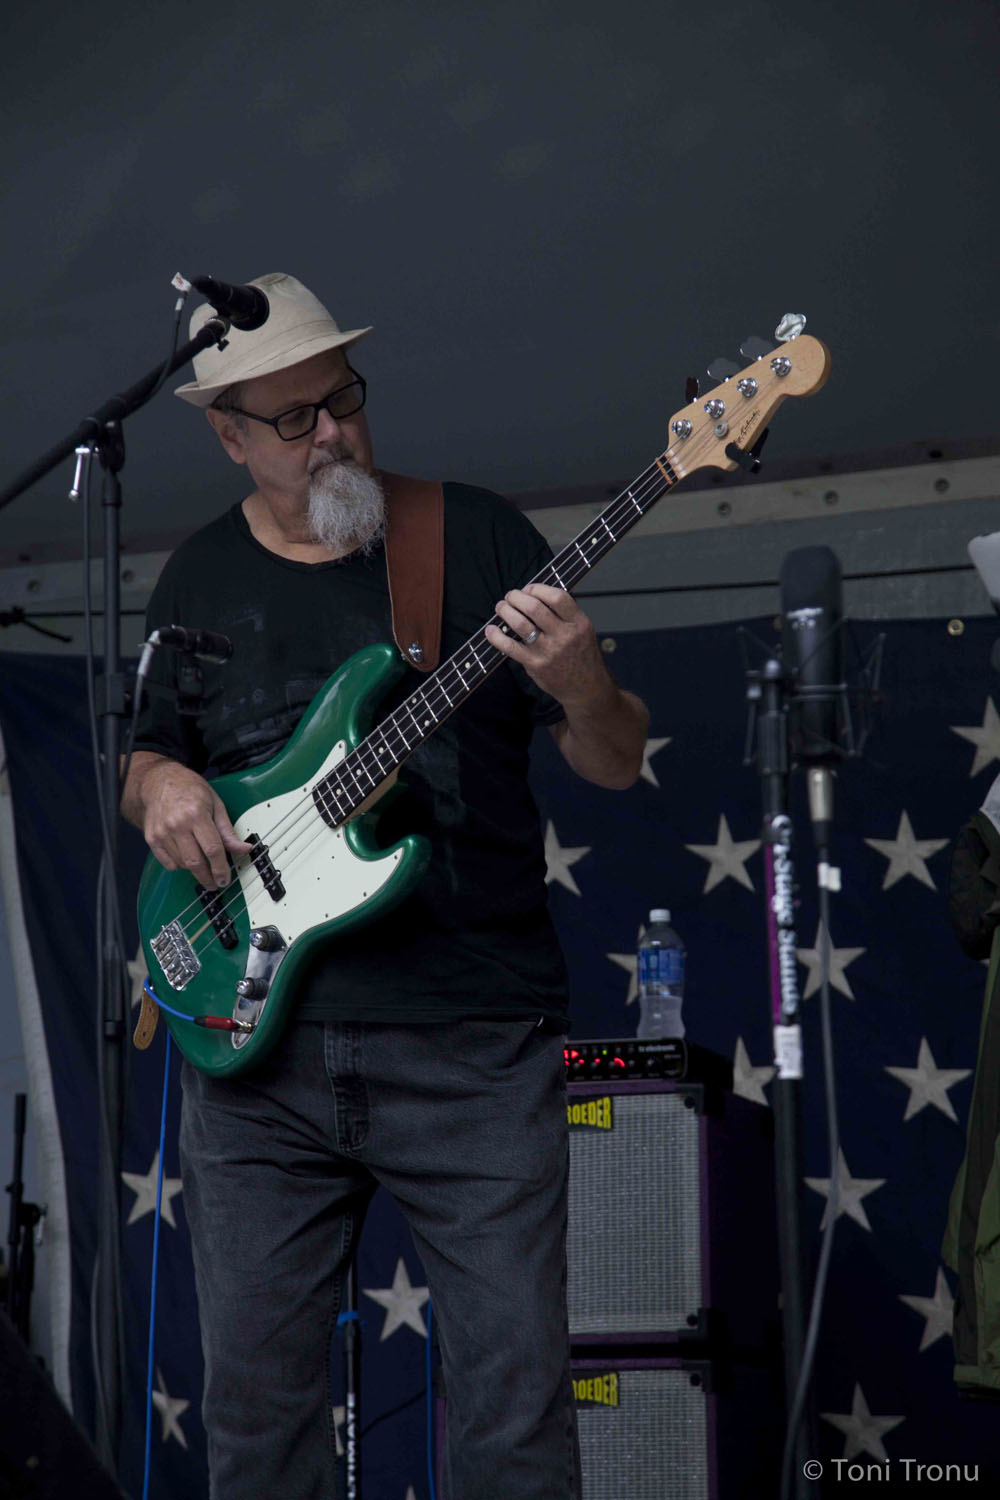 electric-bass-musician-roger-tiny-kohrs-stokes-stomp-danbury-north-carolina-live-music-festival-september-2014.jpg